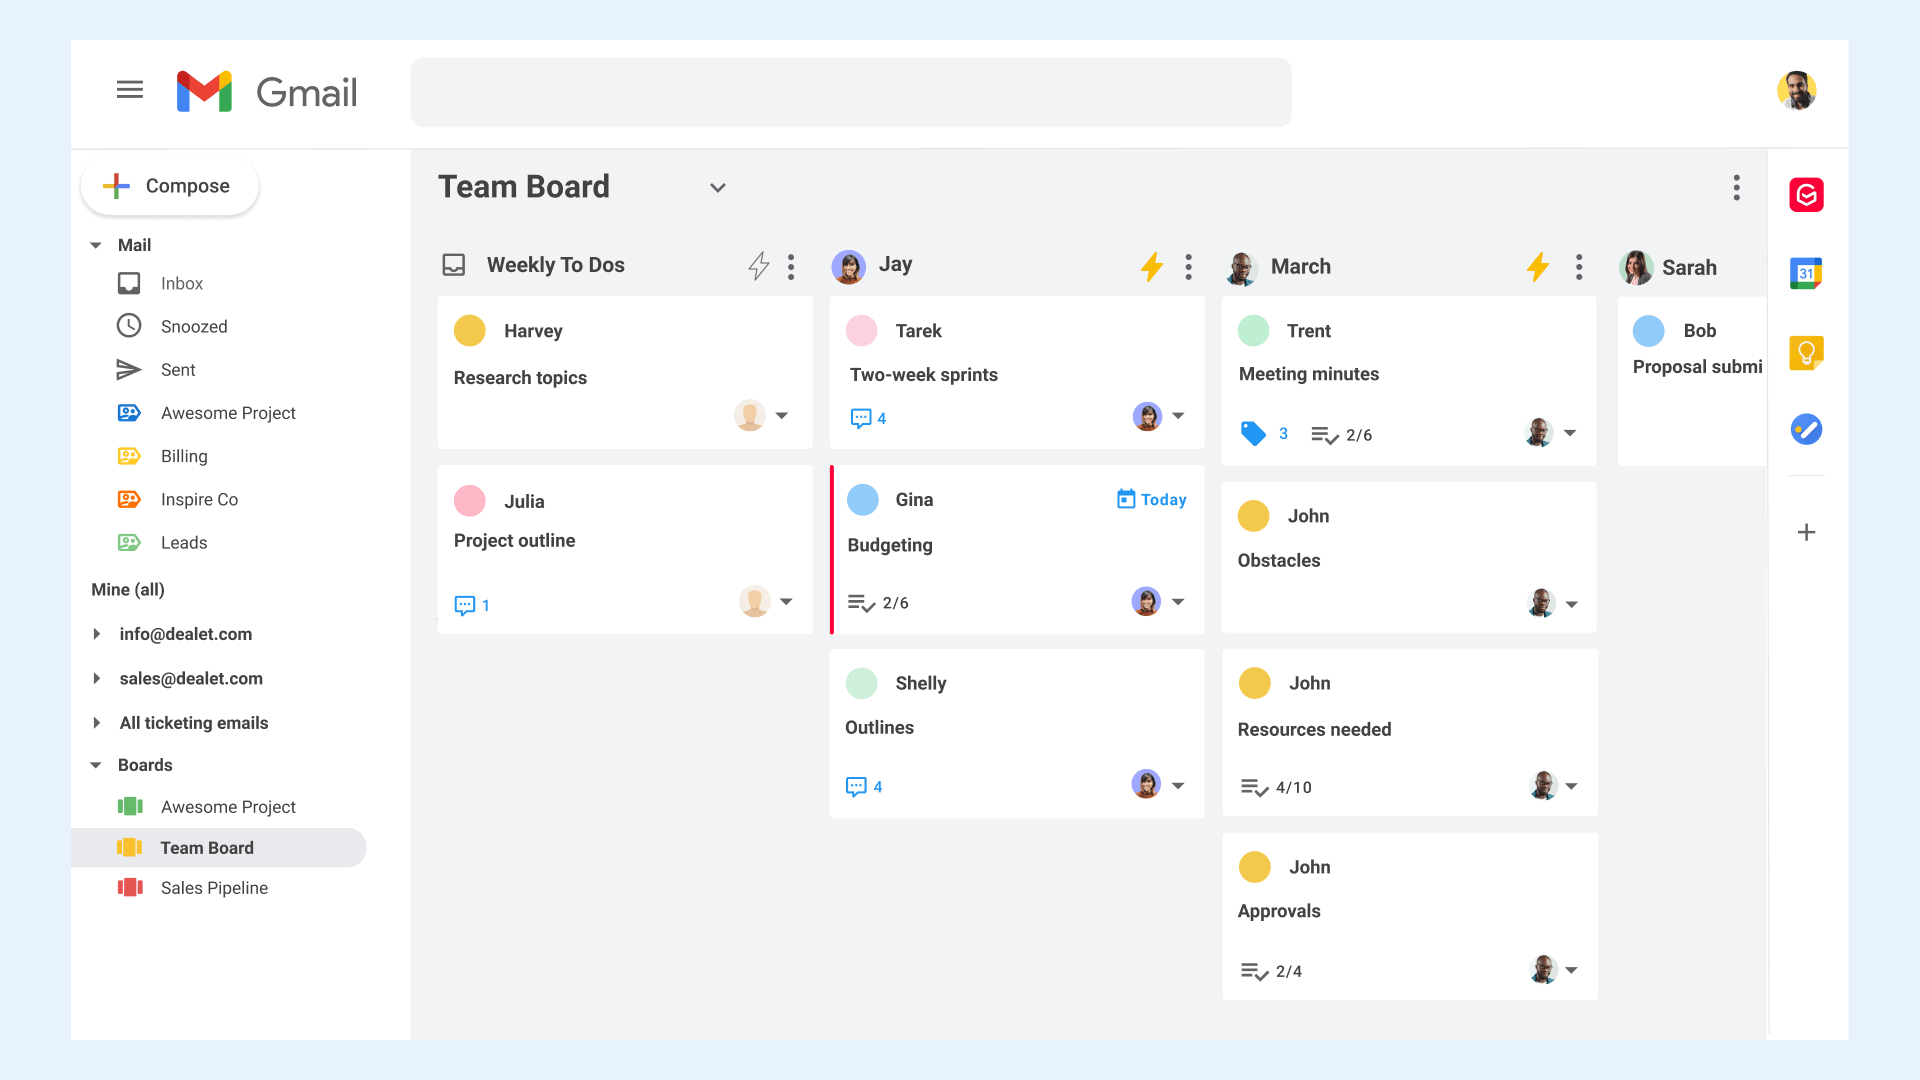 Shared boards in Gmail